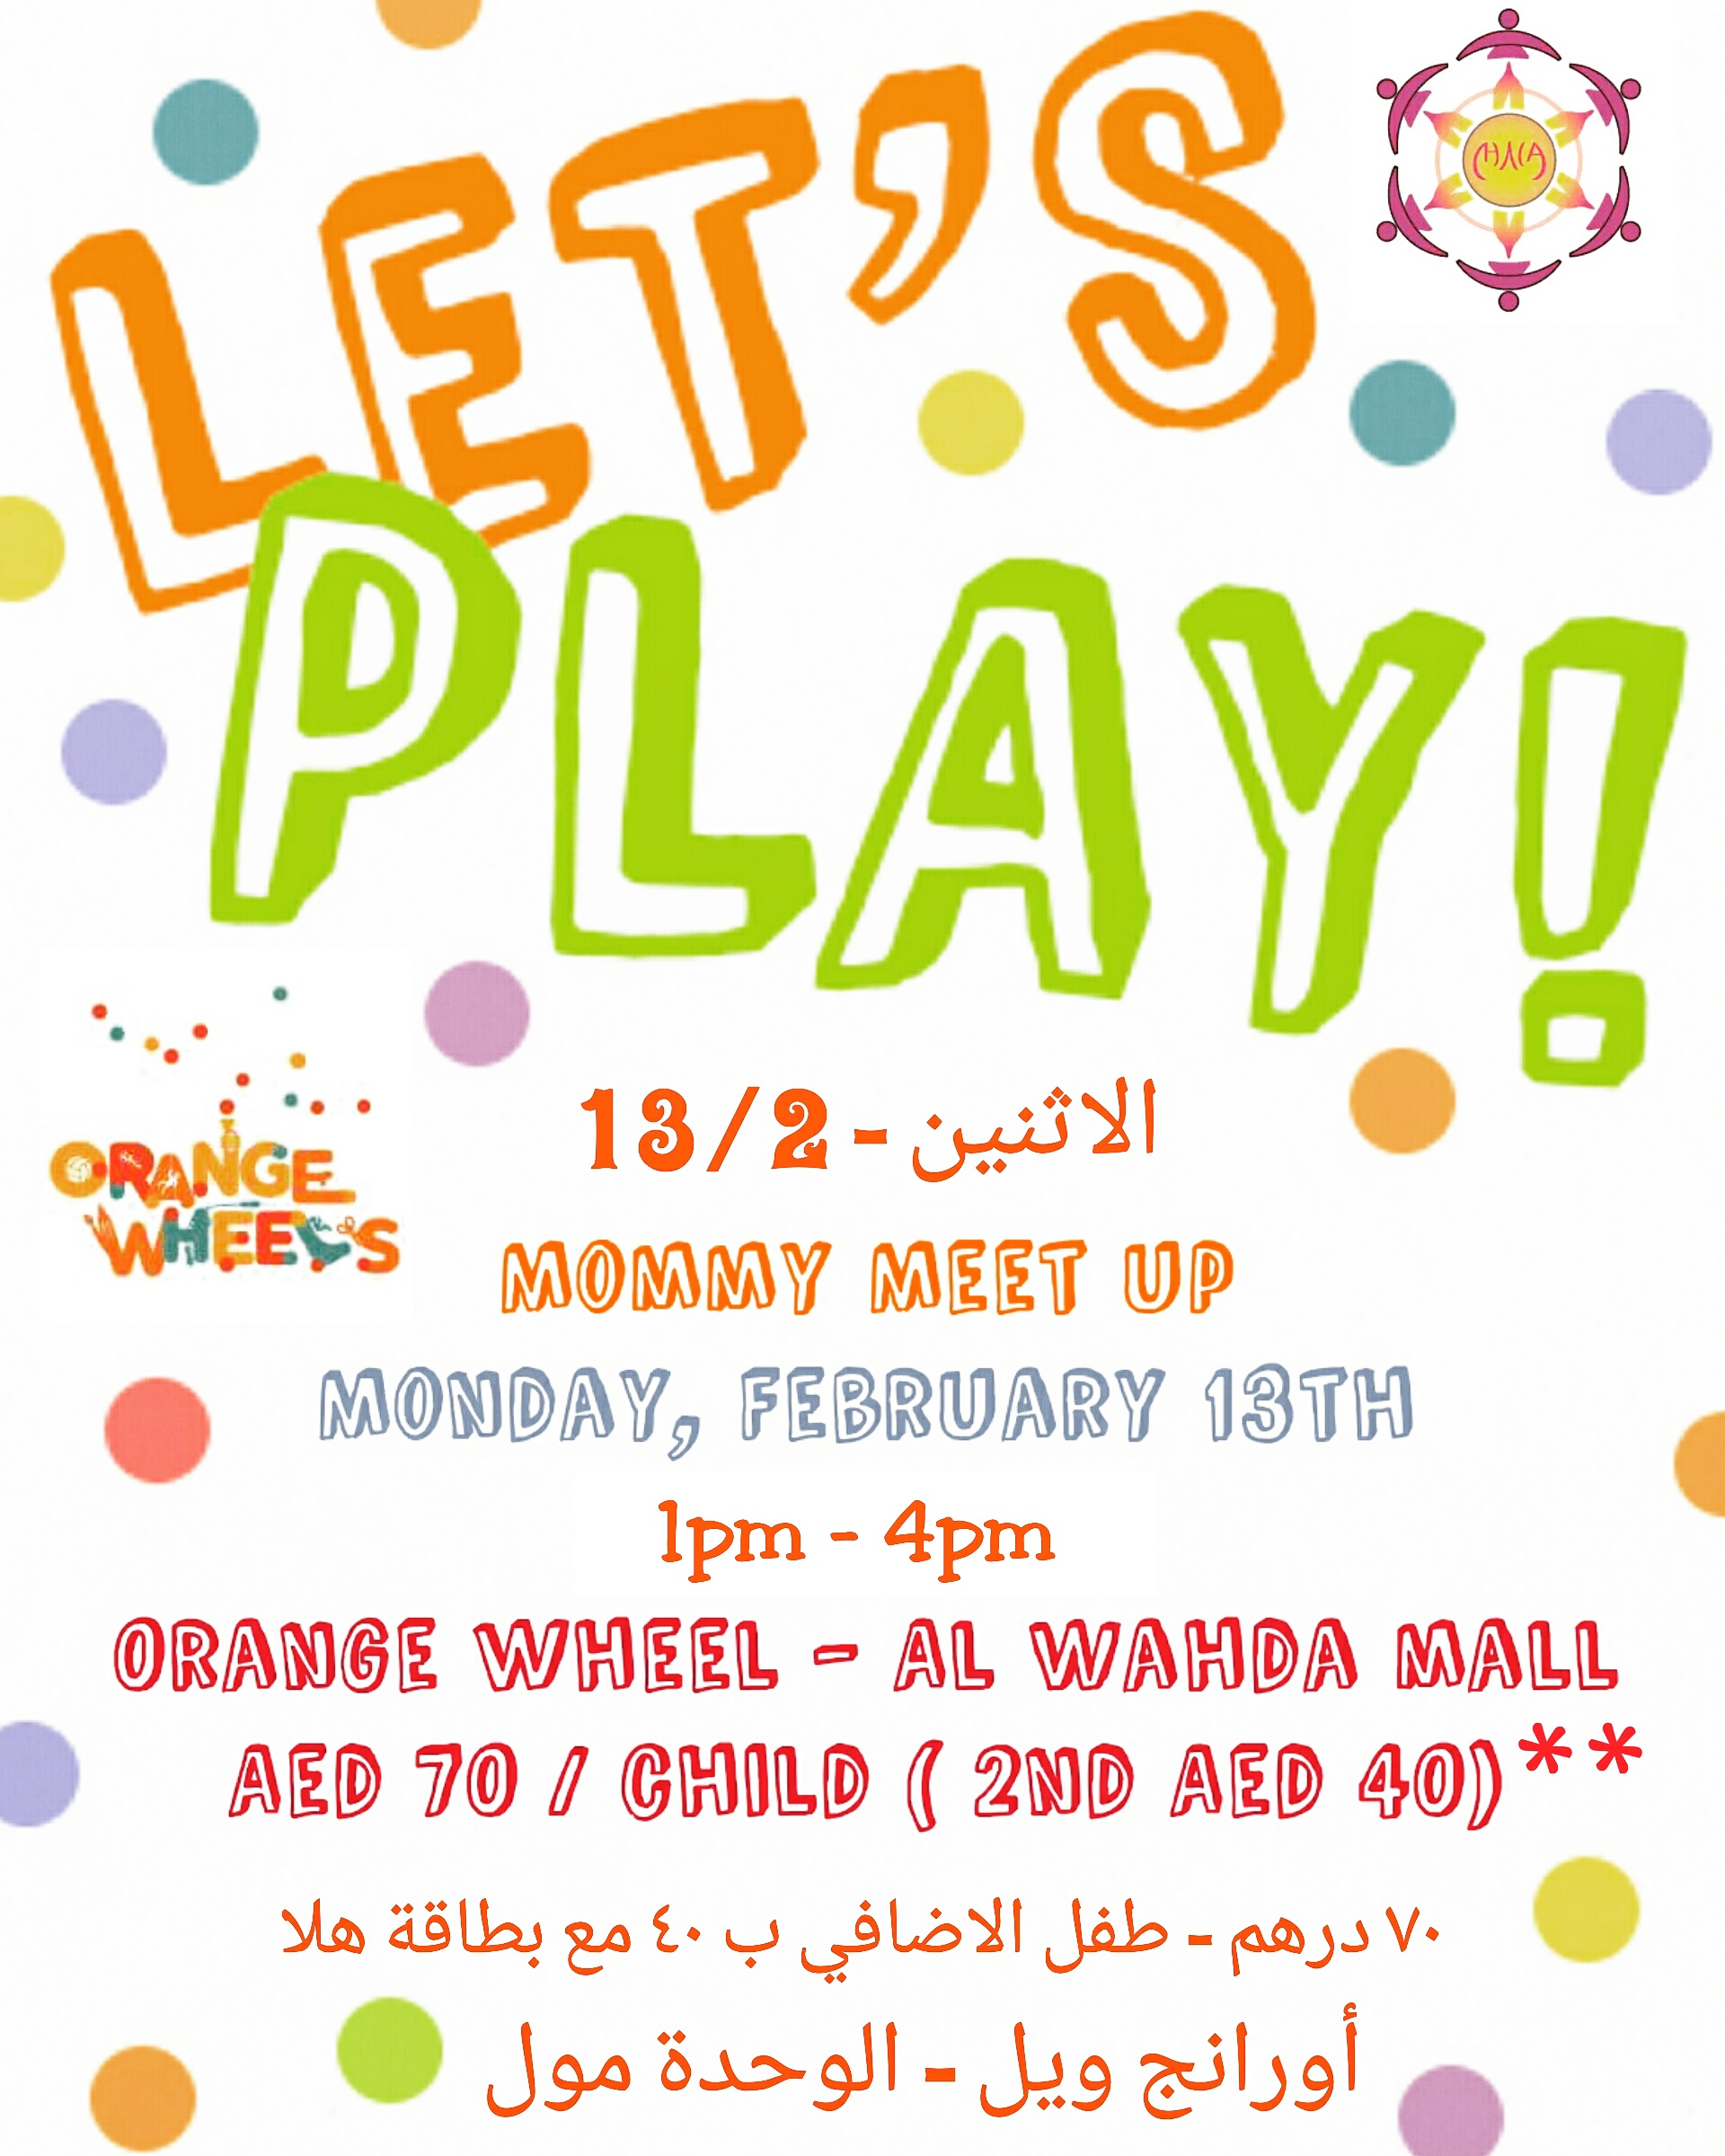 Play Date - Term break - Orange wheel | UAE MOMS | #1 Social Community Group for all Women in UAE 3